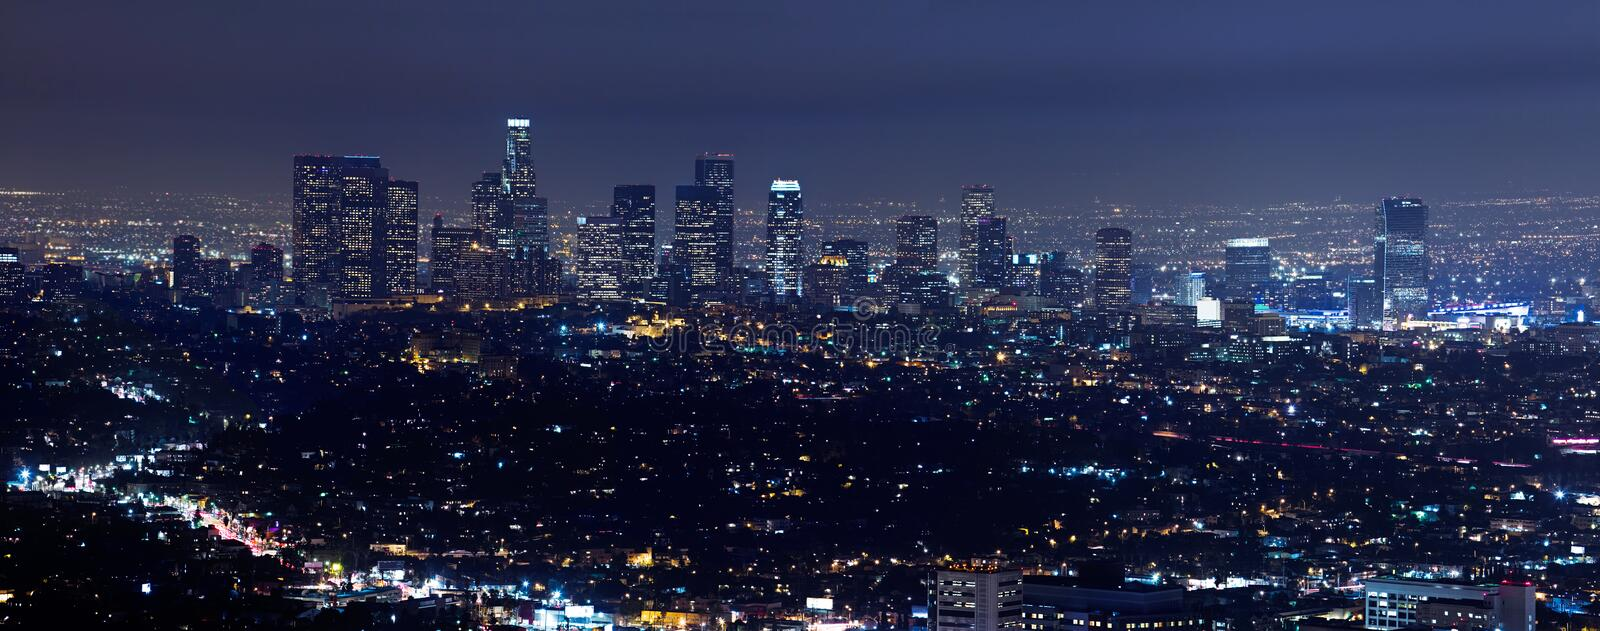 Skyline de Los Angeles na noite fotos de stock